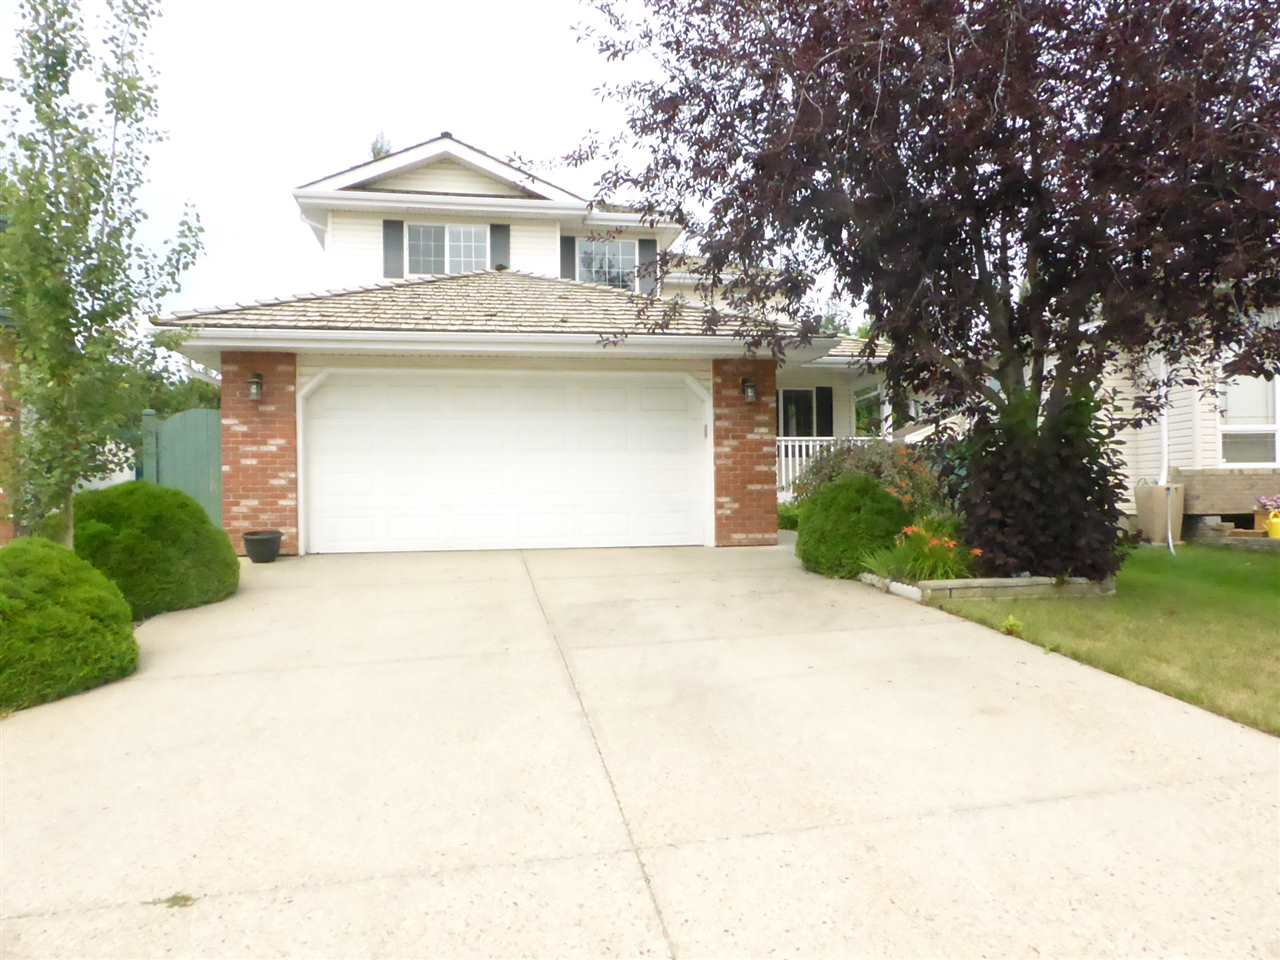 Welcome home to this fabulous 2-storey in the heart of SW Edmonton?s Blackburne community! Located in a very quiet and private cul-de-sac on a pie shaped lot, this home is sure to impress. Main floor features include a formal L/R, flex room/Bdrm, ½ bath, laundry, large great room w/gas fireplace and an updated kitchen (2006) with newer cabinets, counters, S/S appliances and tile back splash. The upper floor features 3 bedrooms and a 4pce bath. The master suite is a nice size with a W/I closet and its own 4pce ensuite c/w jacuzzi tub and separate shower. The basement is fully developed with a large functional rec room w/gas fireplace + 5 B/I speakers, 2 more rooms for bedrooms and/or a gym and a 3pce bath. The backyard large backyard is gorgeous with a ground level deck, pergola and mature landscaping. Blackburne is a great community that is conveniently located minutes to amenities, ravines, parks and just a short drive to the EIA. Don?t miss your chance to own this great home!